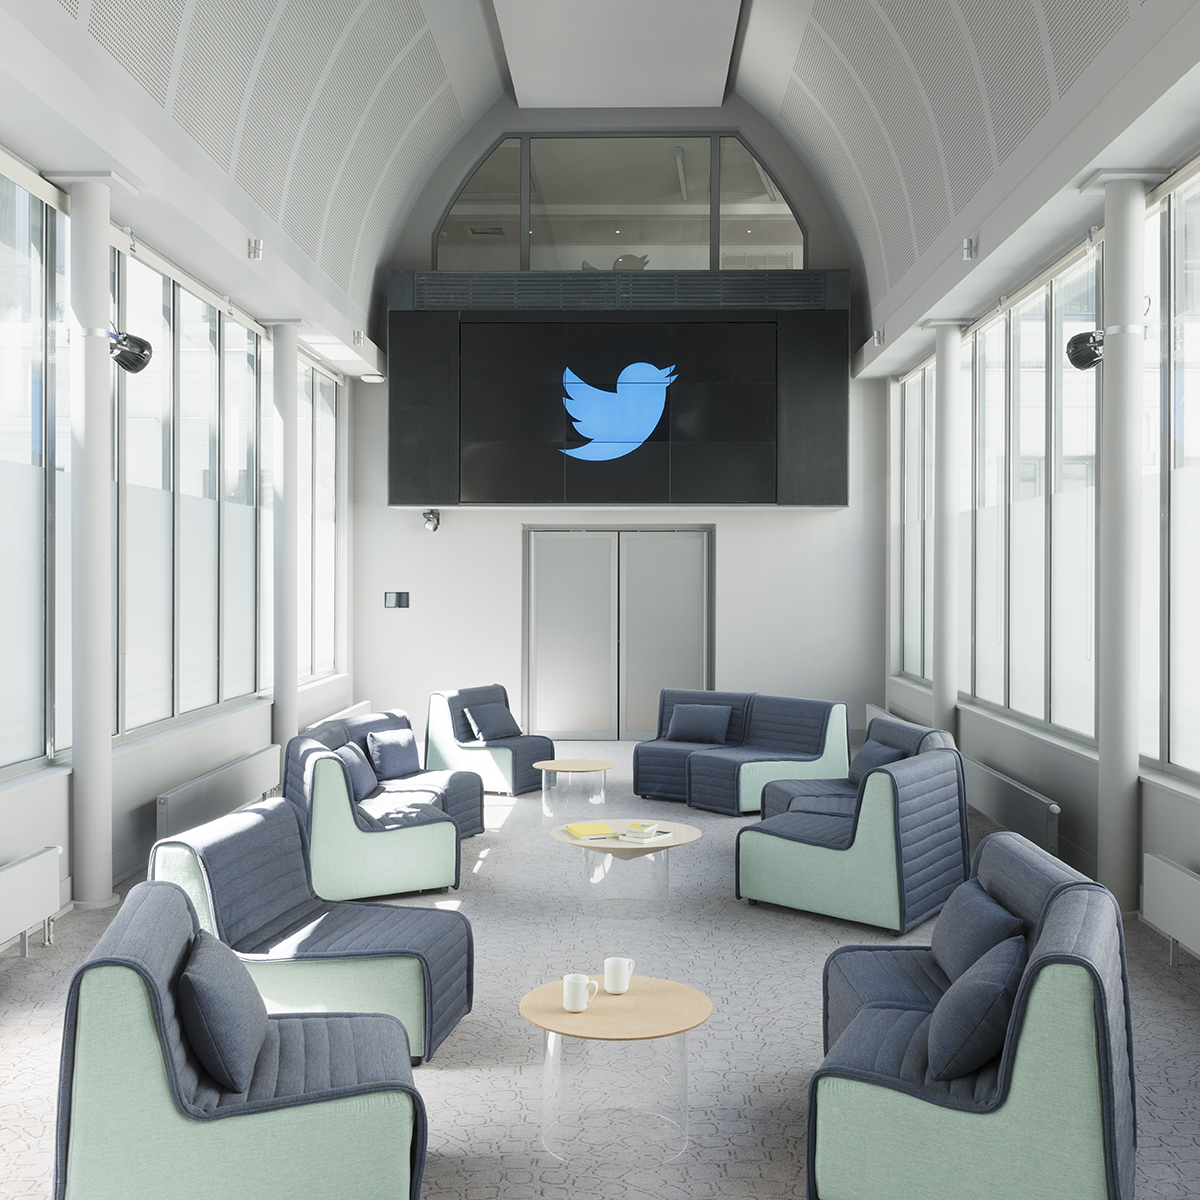 twitter-paris-france-HQ-bureaux-photos-architecture-5